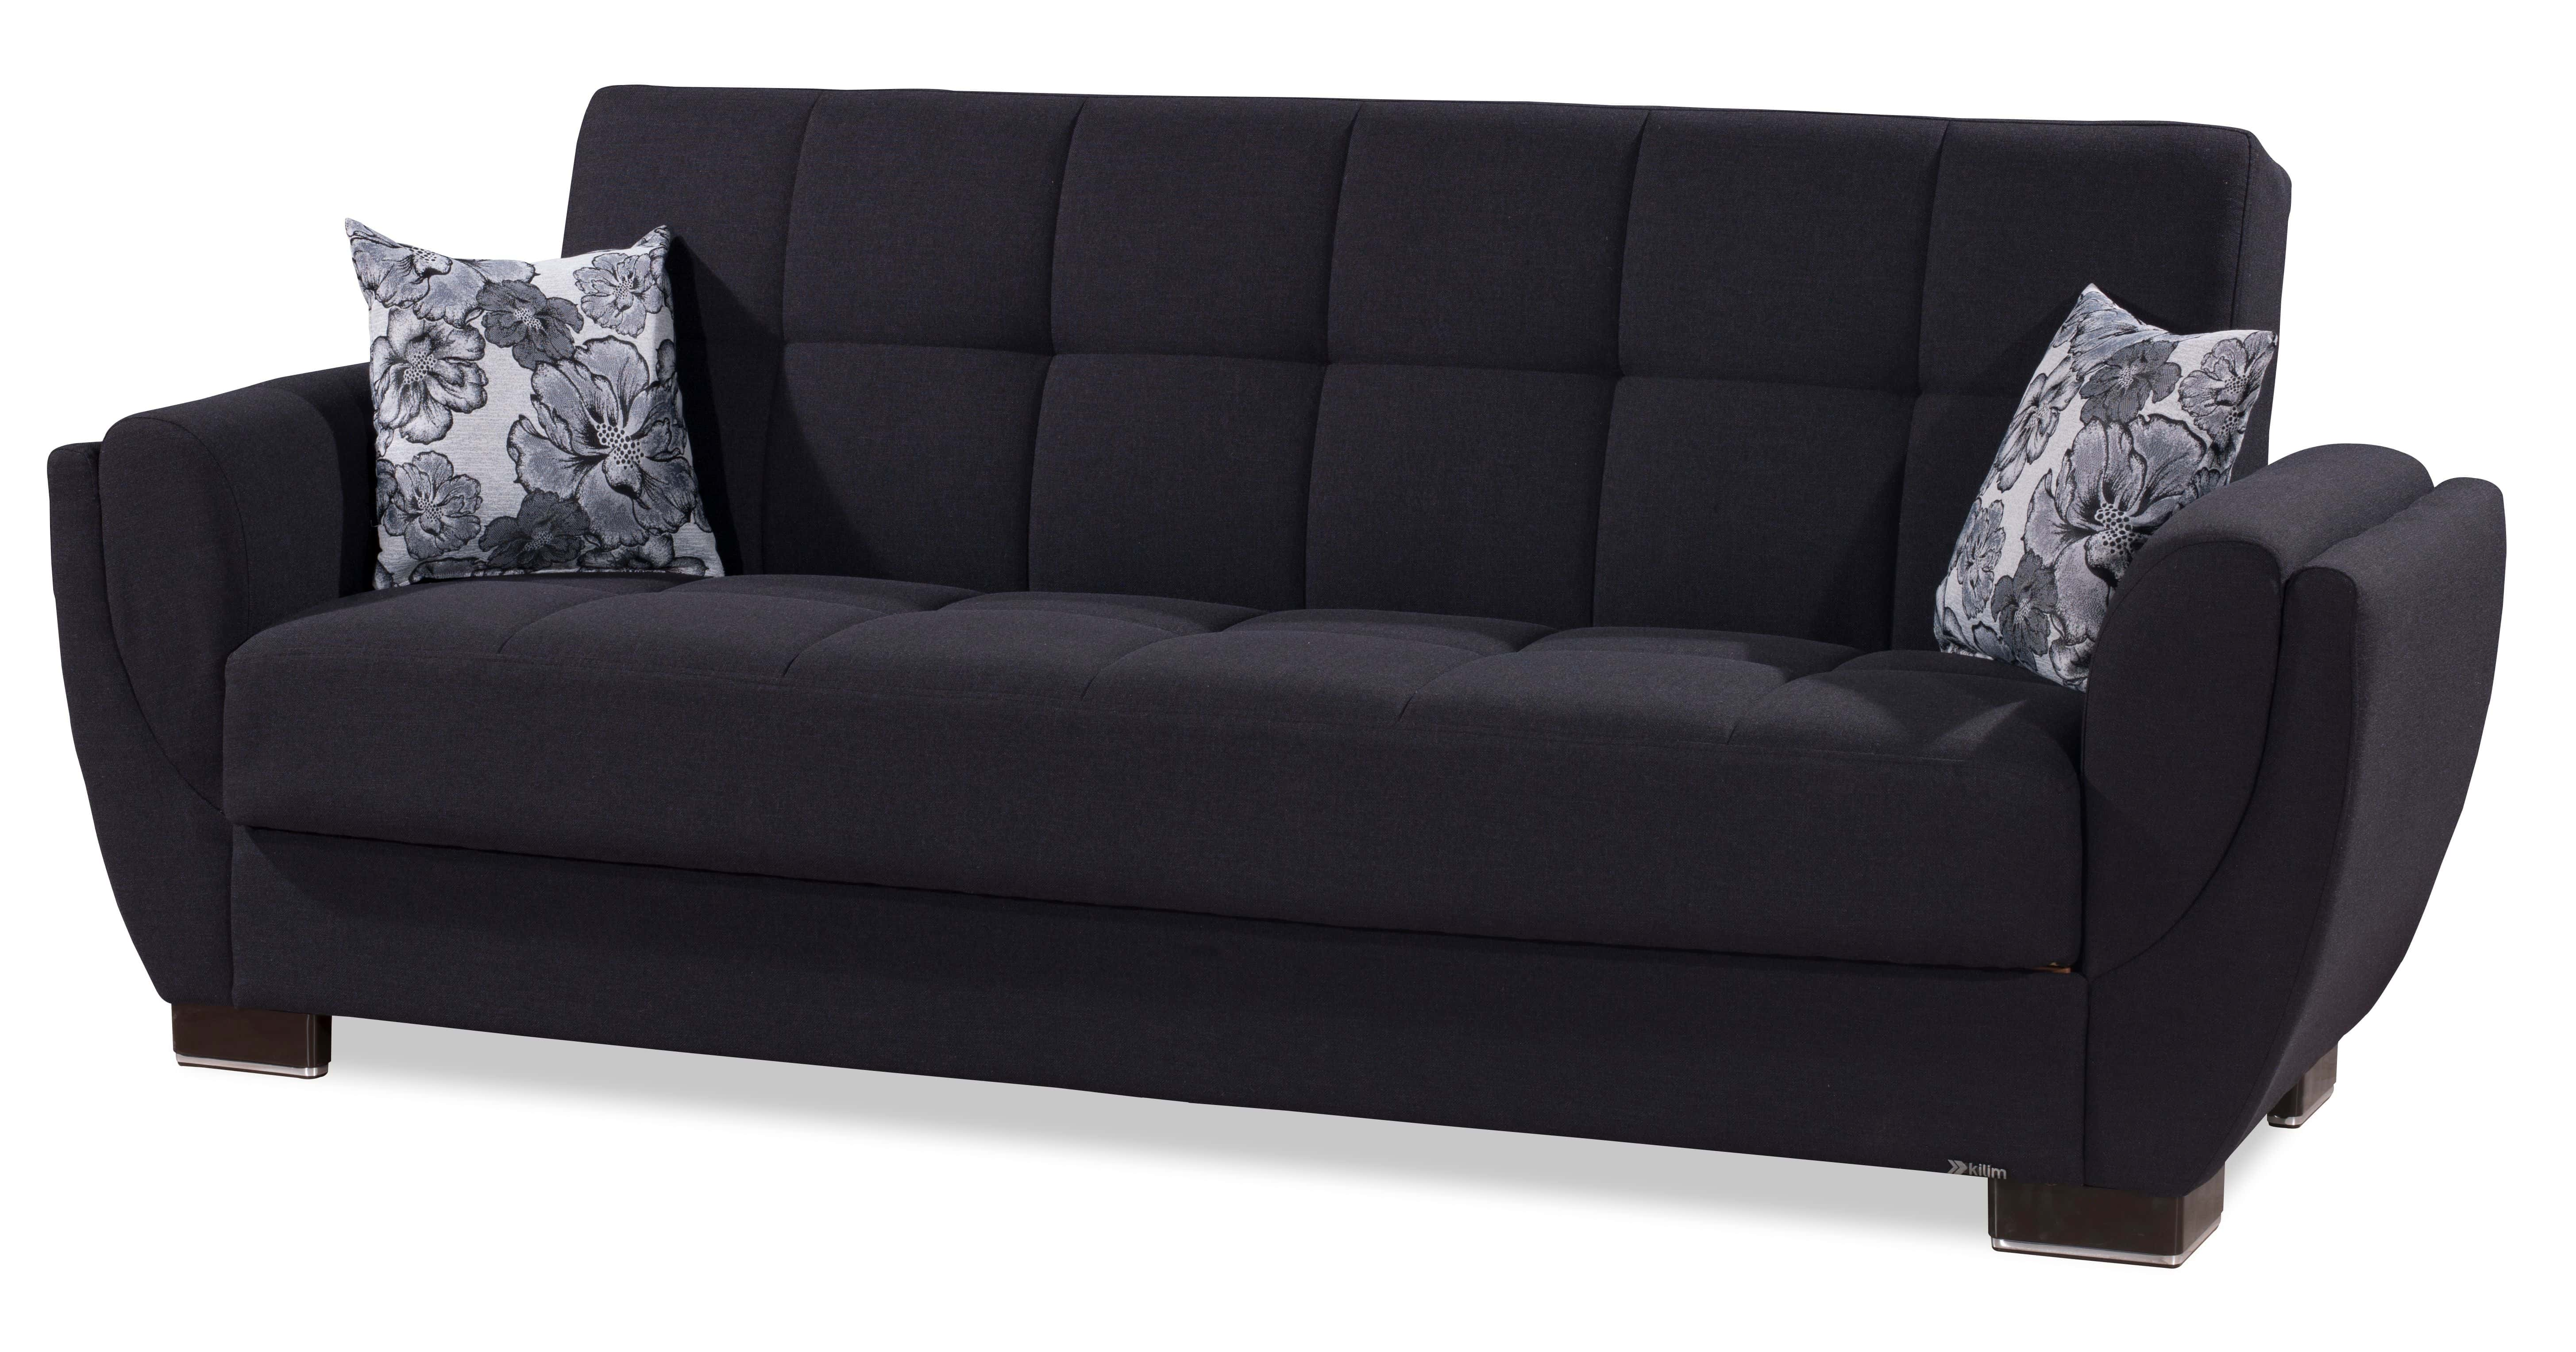 Picture of: Armada Air Dark Blue Sofa Bed By Casamode